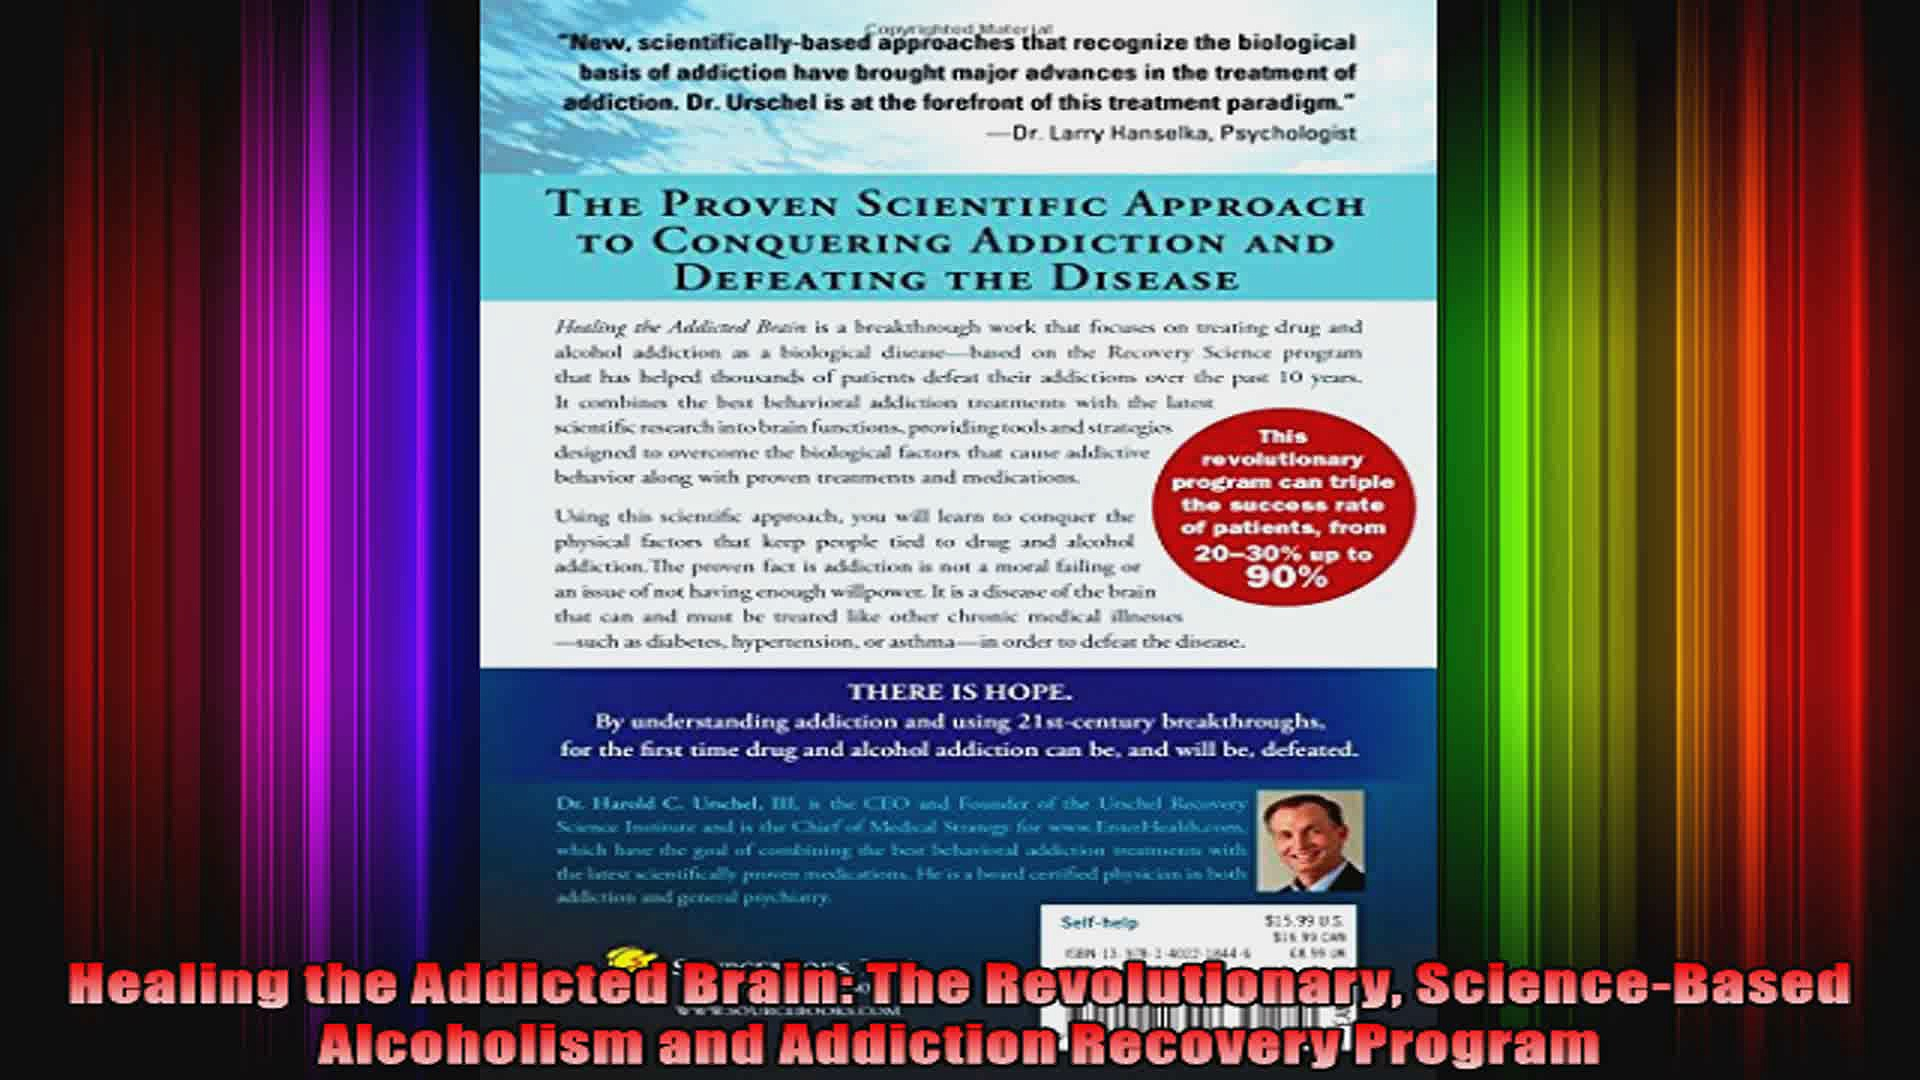 Healing the Addicted Brain The Revolutionary ScienceBased Alcoholism and Addiction